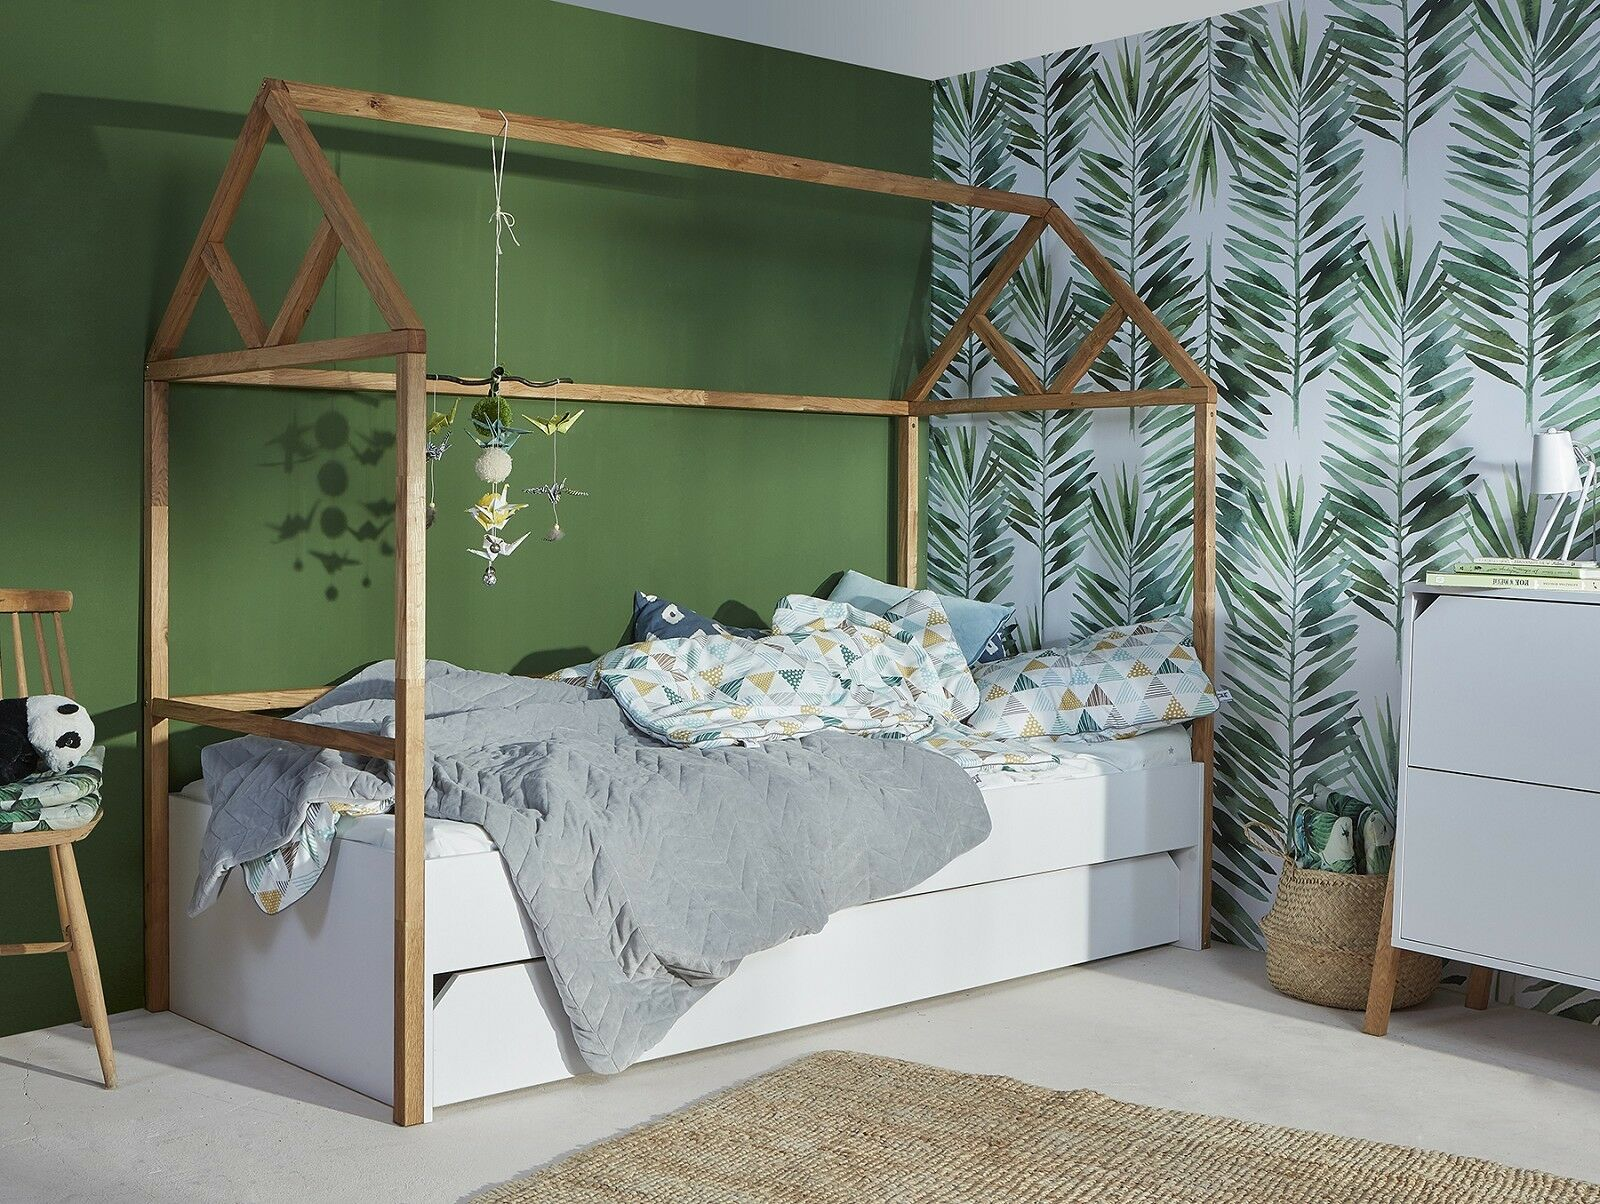 hausbett kinderbett 90x200 mit schublade zeltbett jugendbett holz wei marta eur 575 00. Black Bedroom Furniture Sets. Home Design Ideas